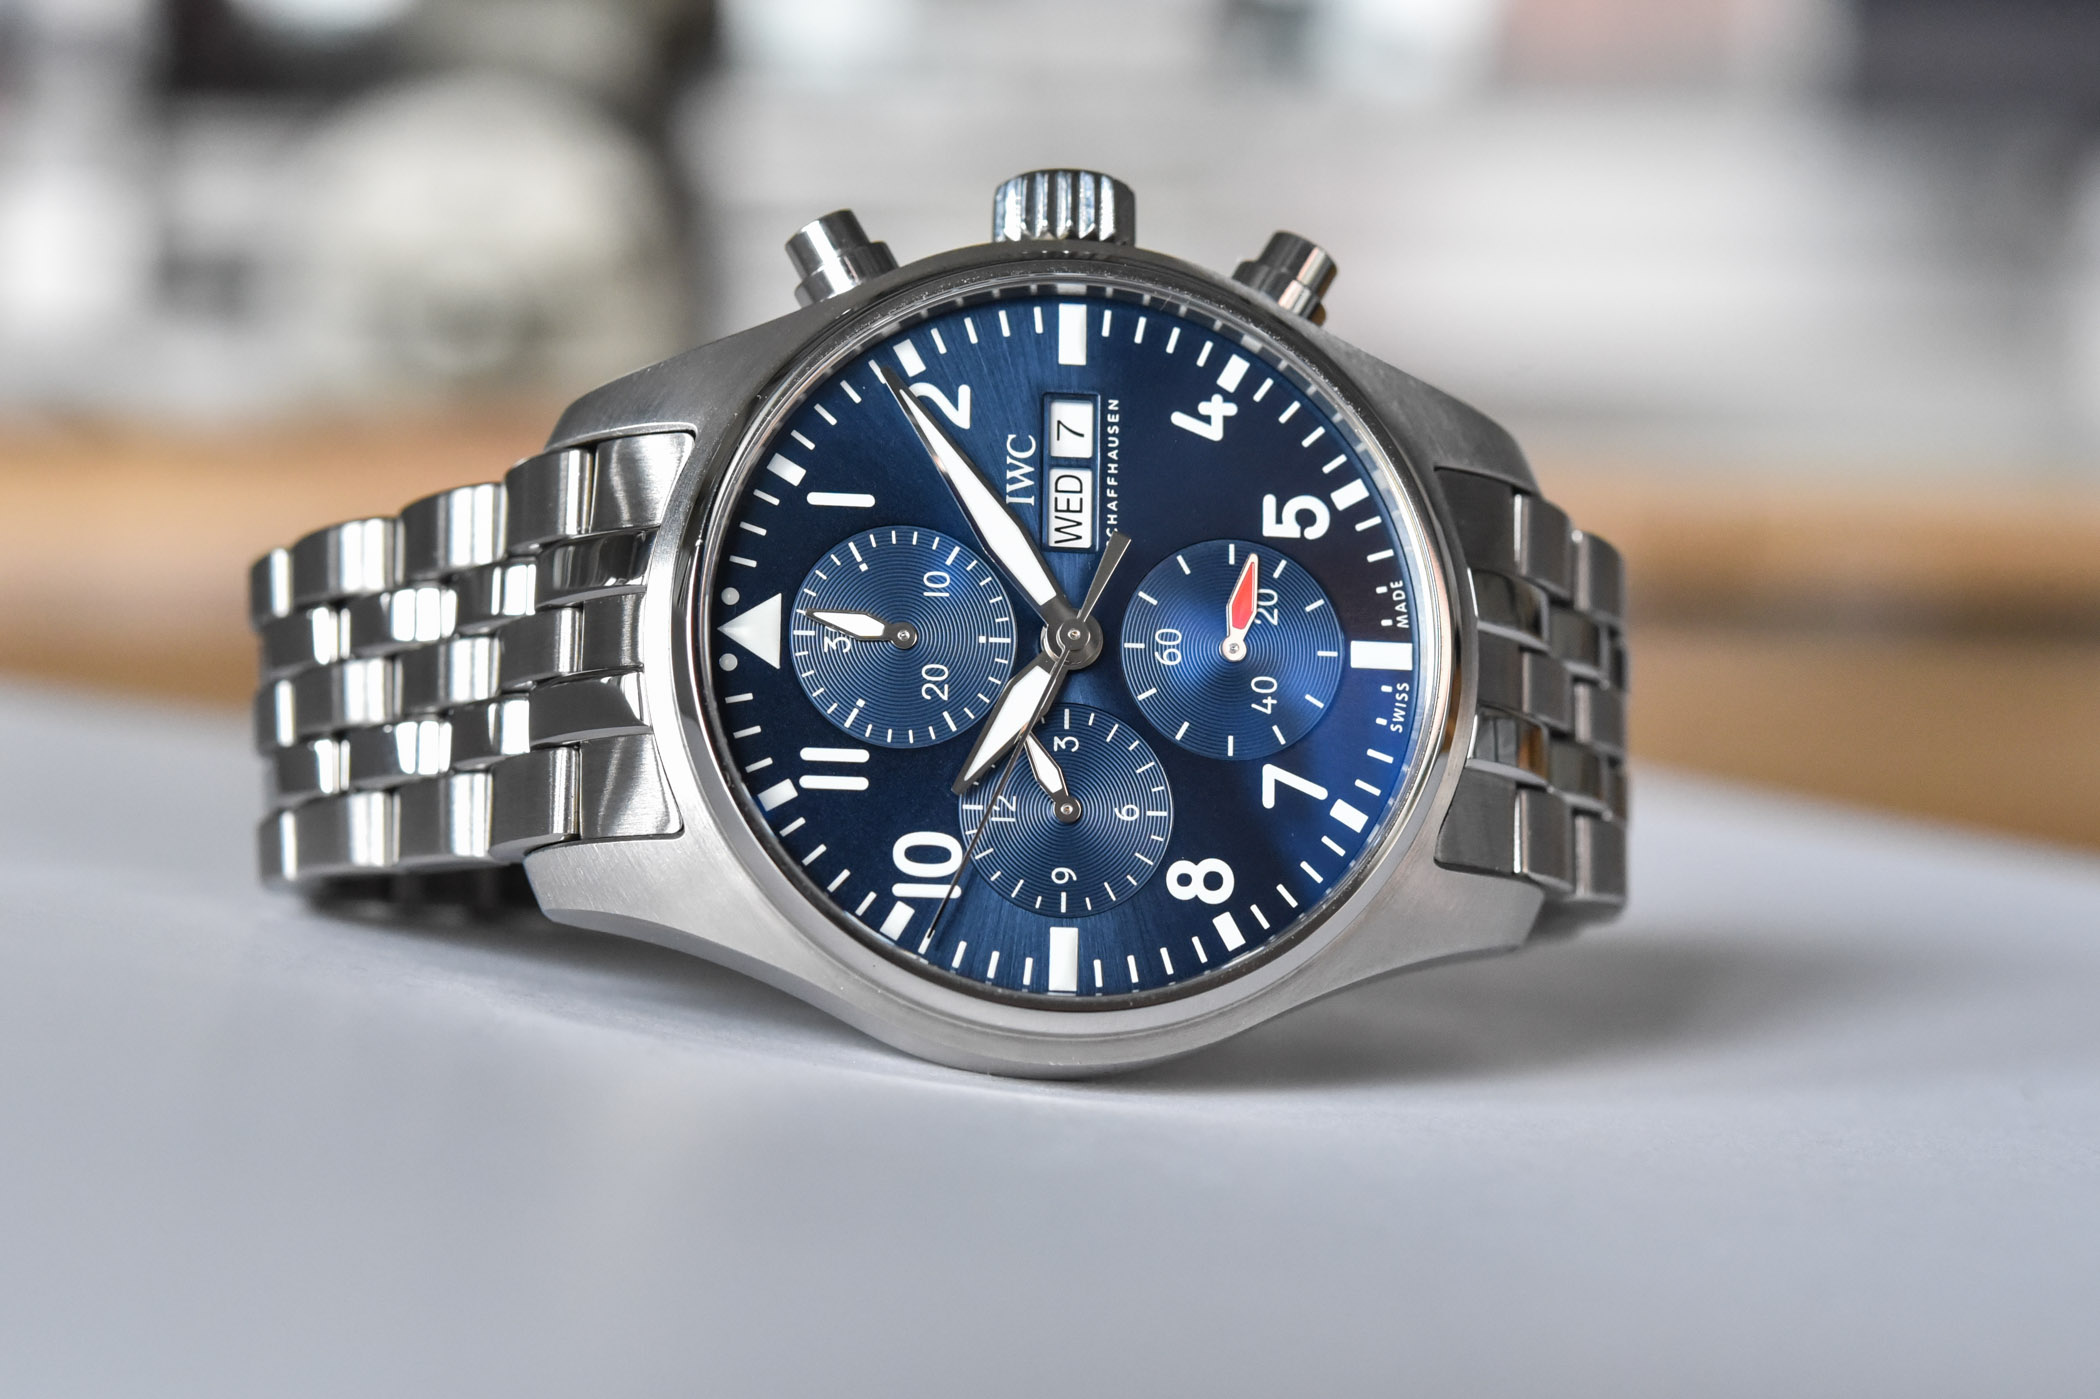 IWC Pilot's Watch Chronograph 41 - IW3881 - review video - 10